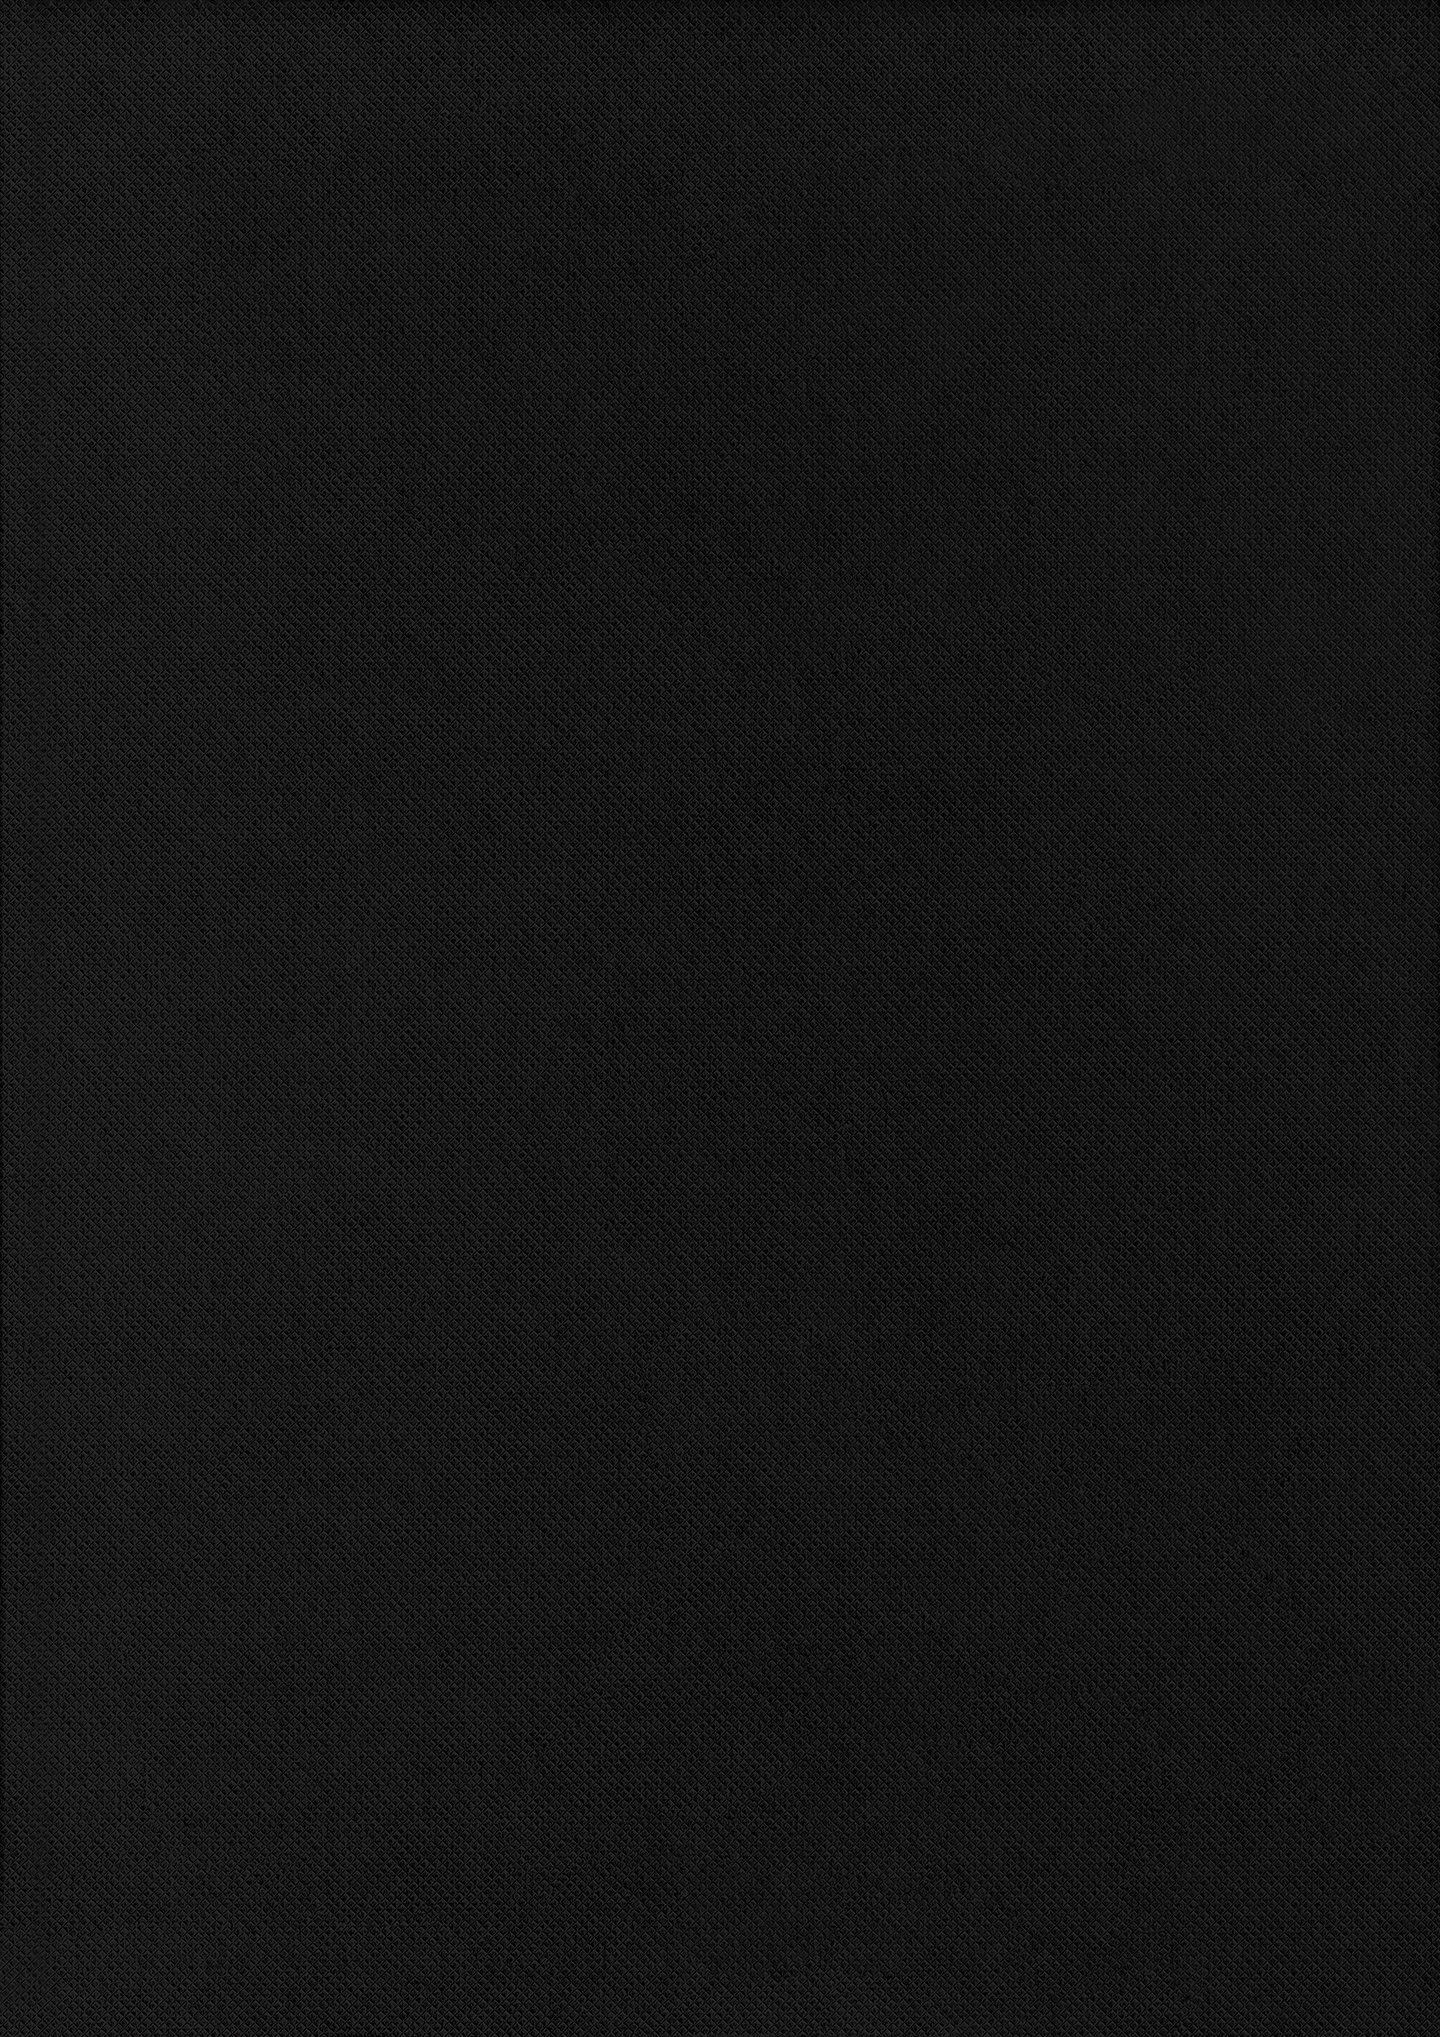 Black Abstract Textured Backdrop For Photo Booth D180 Black Texture Background Black Background Wallpaper Black Background Design